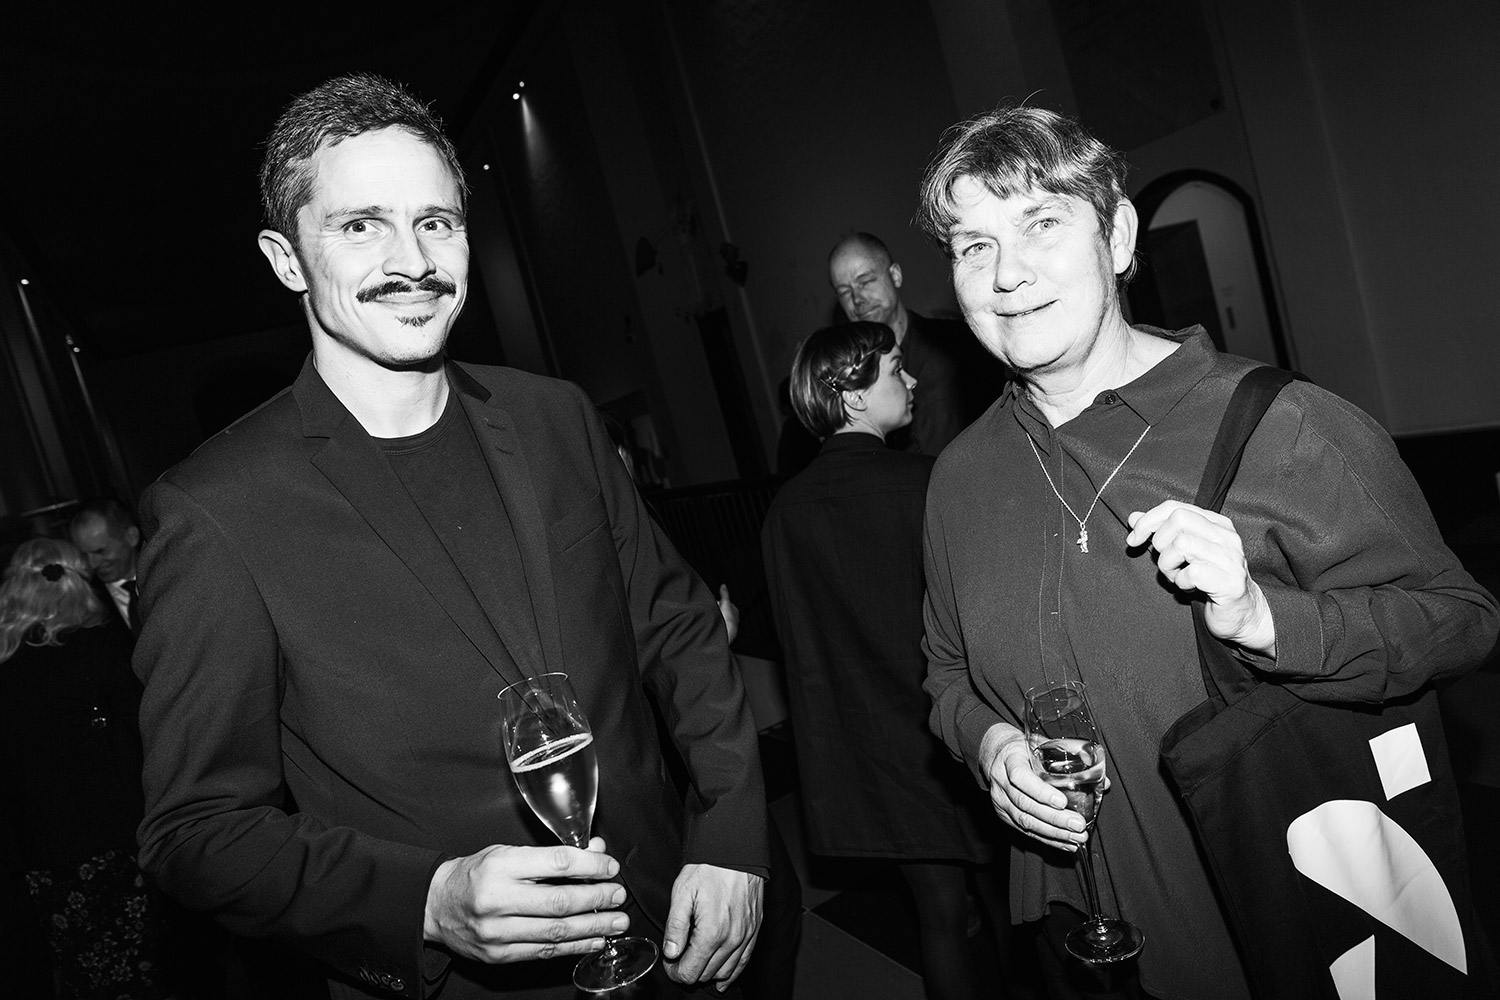 Kalle Sanner & Elsa Modin. Photo: Emma Svensson/Hasselblad Foundation